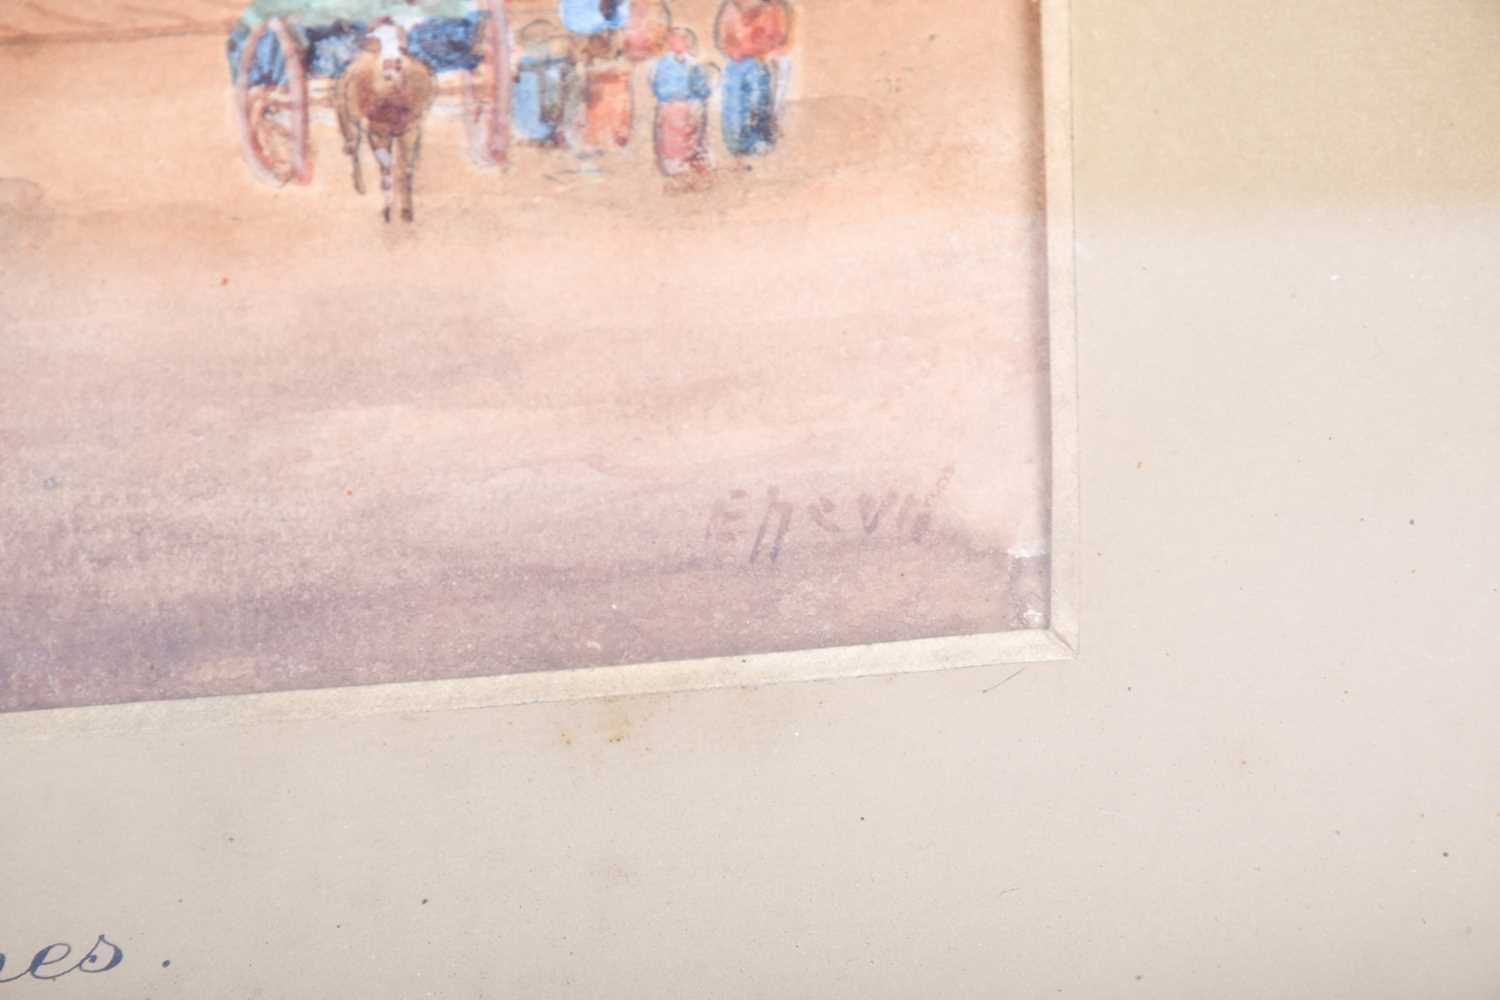 Edward Nevil (British, fl: 1880 - 1900) 'Ypres' & 'Malines', signed, watercolour, a pair, 27 x 19cm - Image 5 of 7